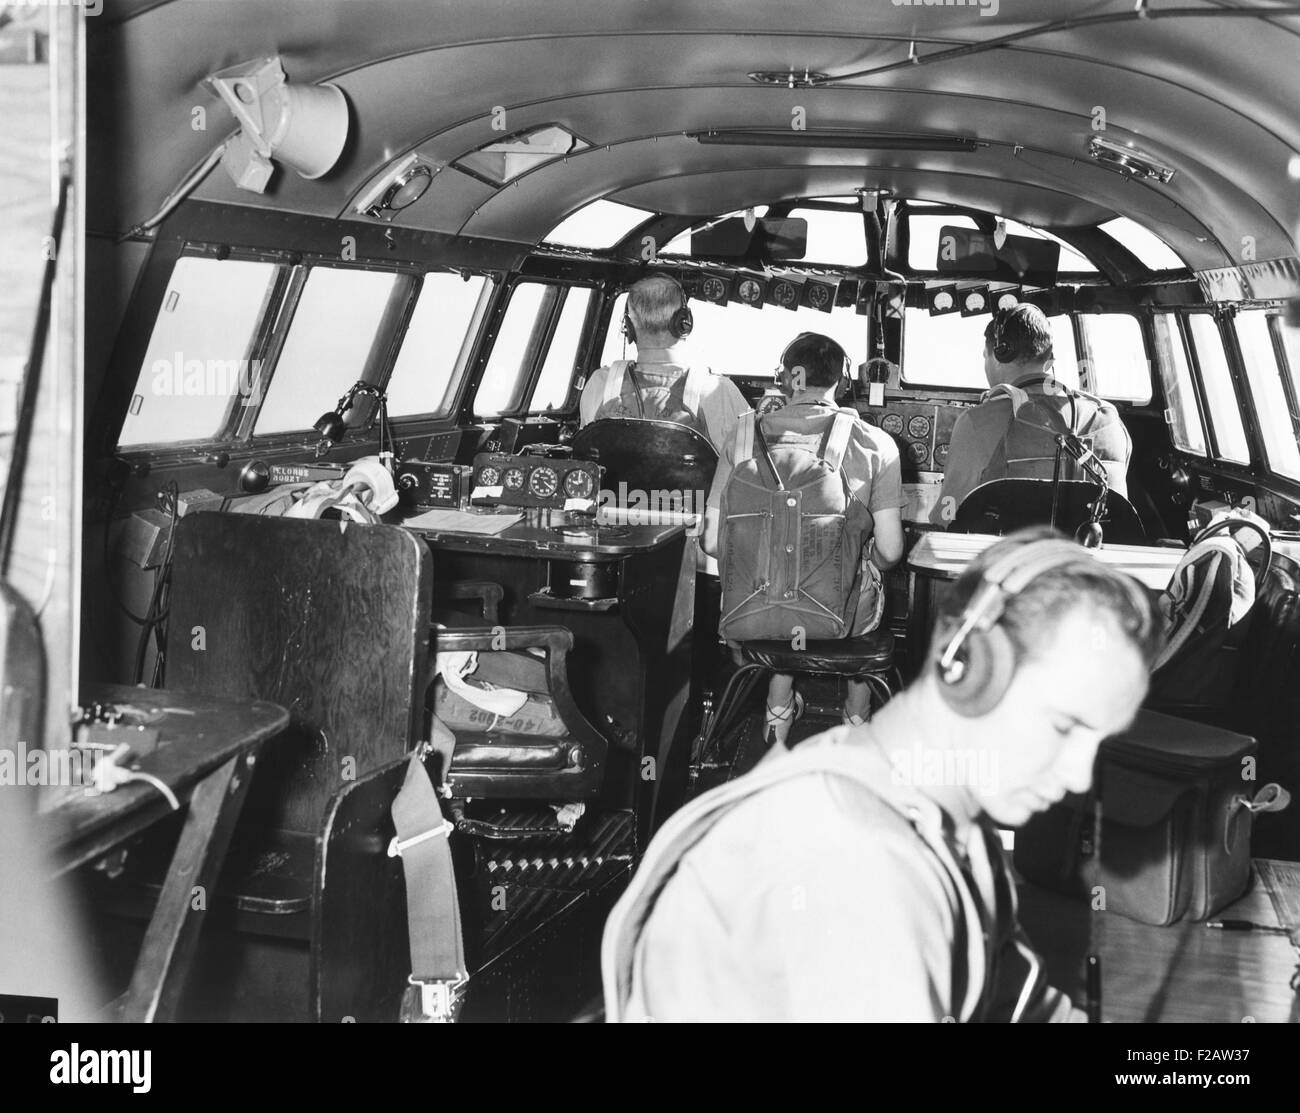 The bridge deck or cabin of the 82-ton Douglas B-19, the world's largest bomber. Nov. 13, 1941. With backs to - Stock Image